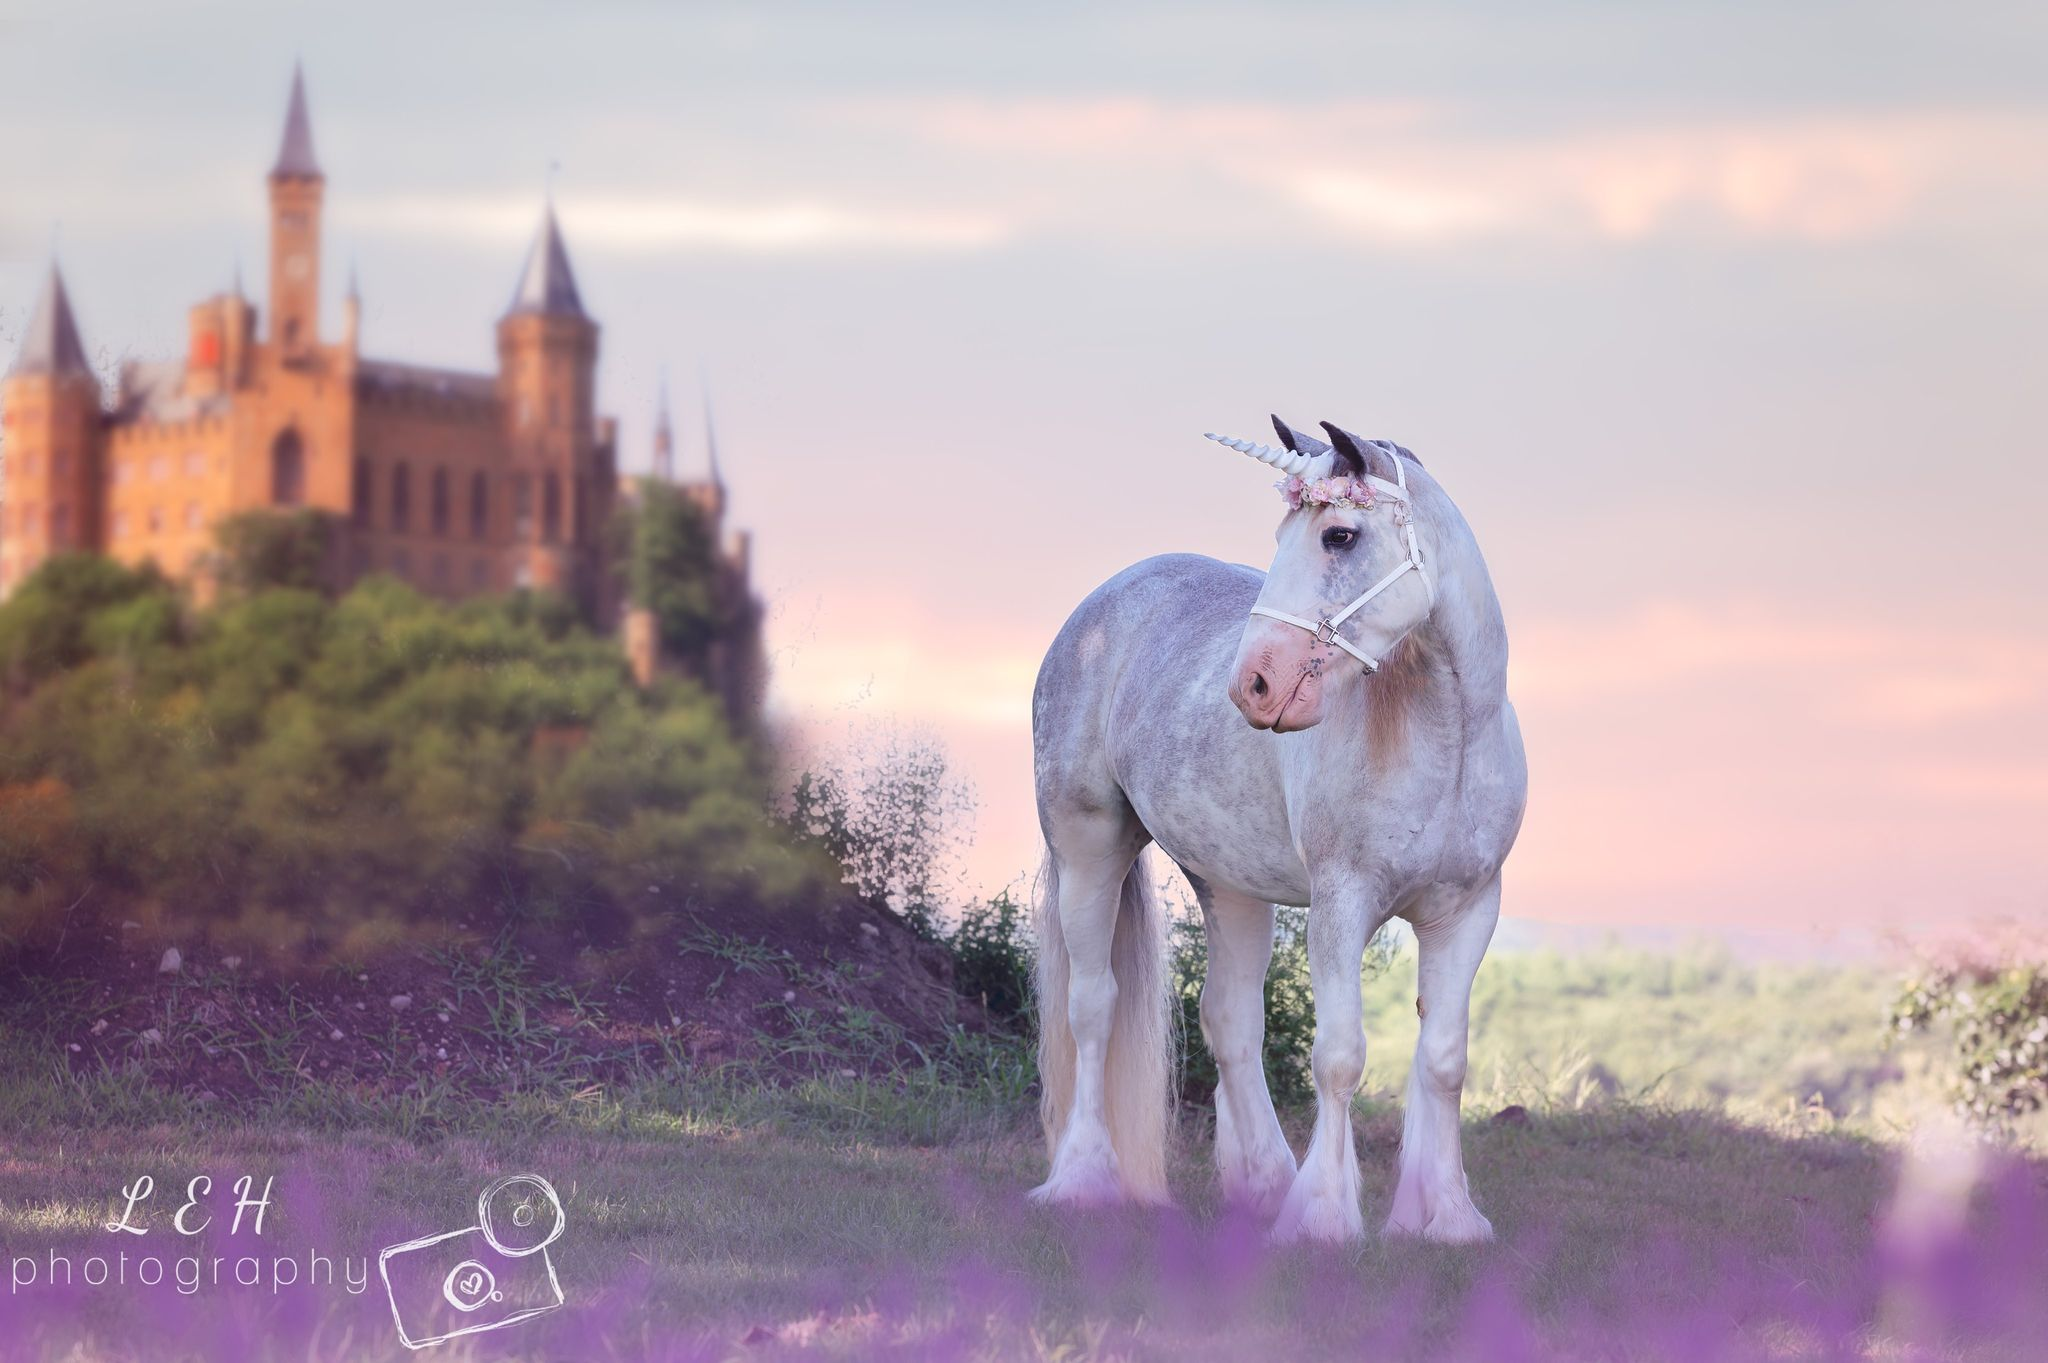 Coming in 2022 – Our Unicorn Farm Fest